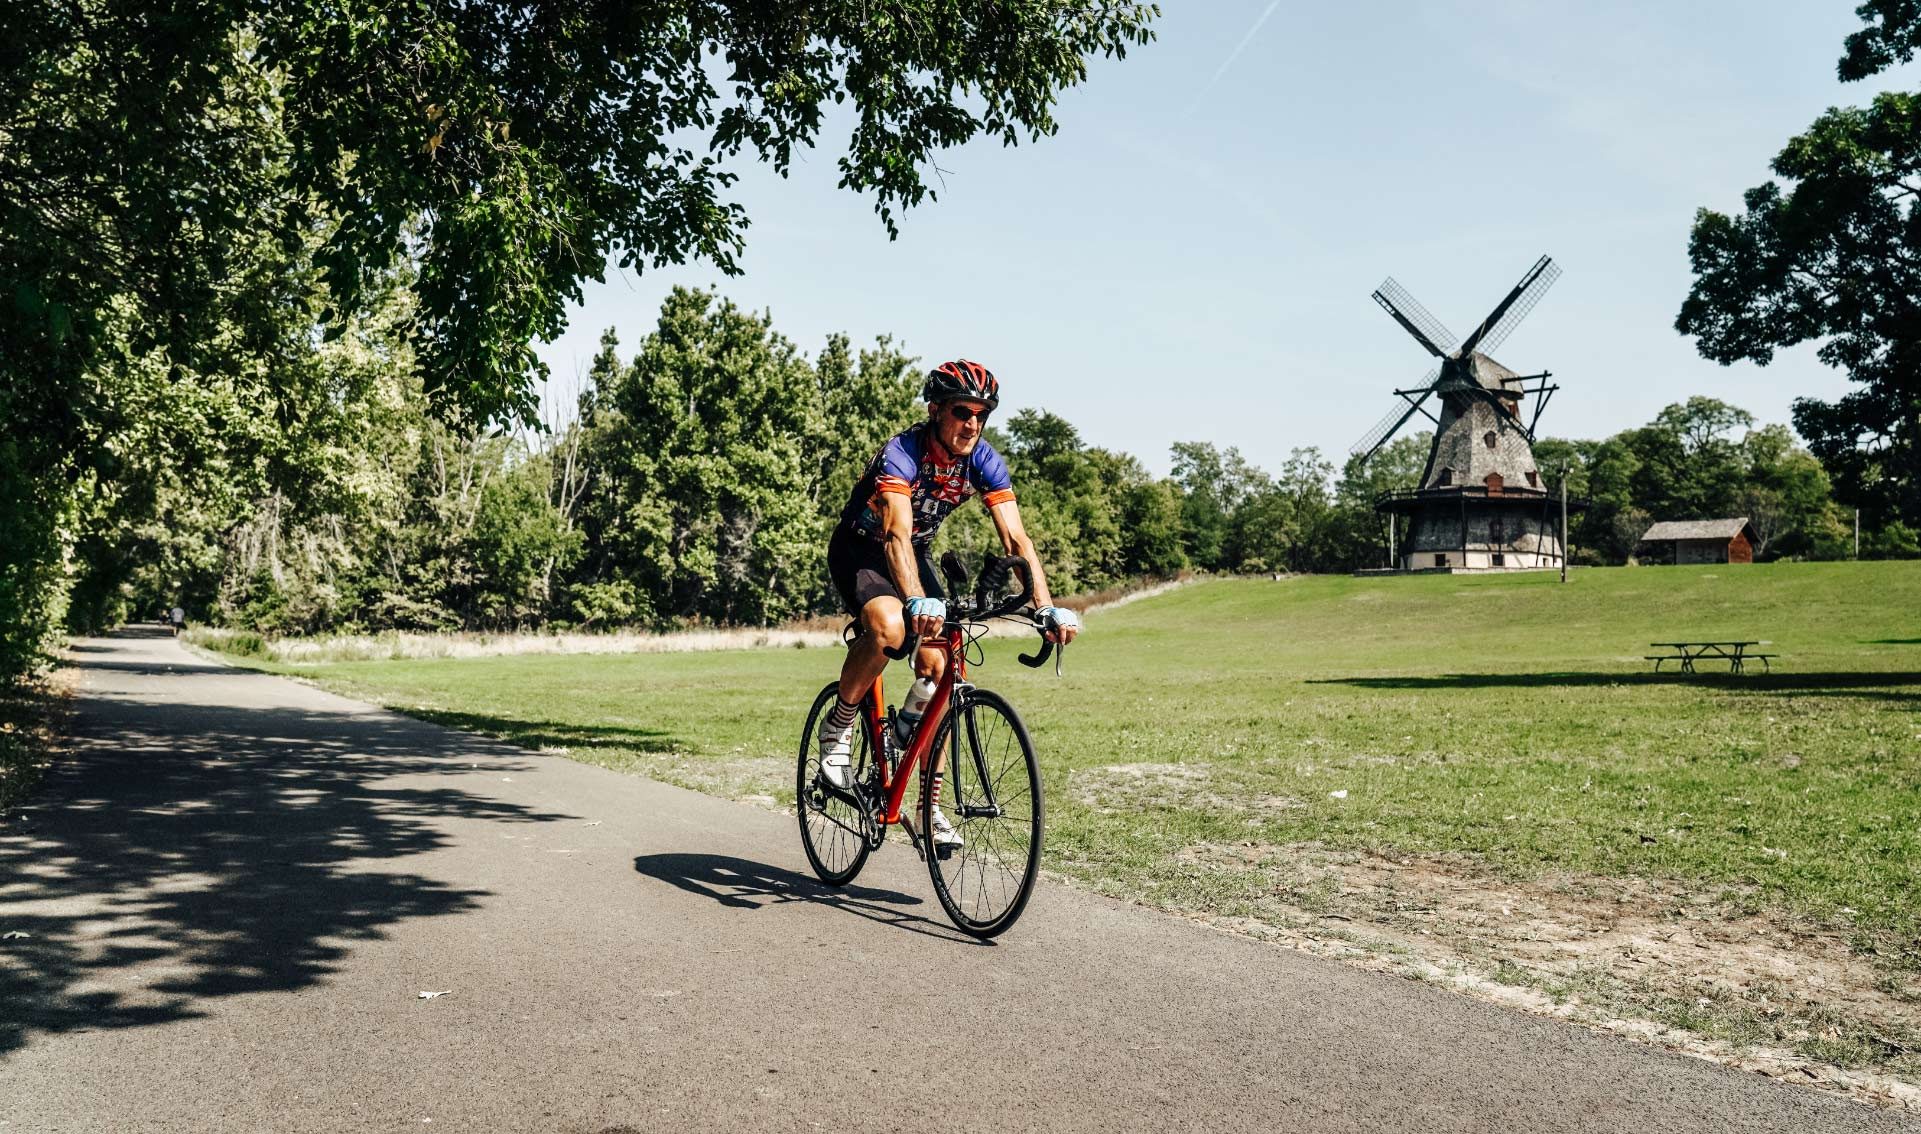 Doug rides his bike past a windmill in a rural outdoor setting.